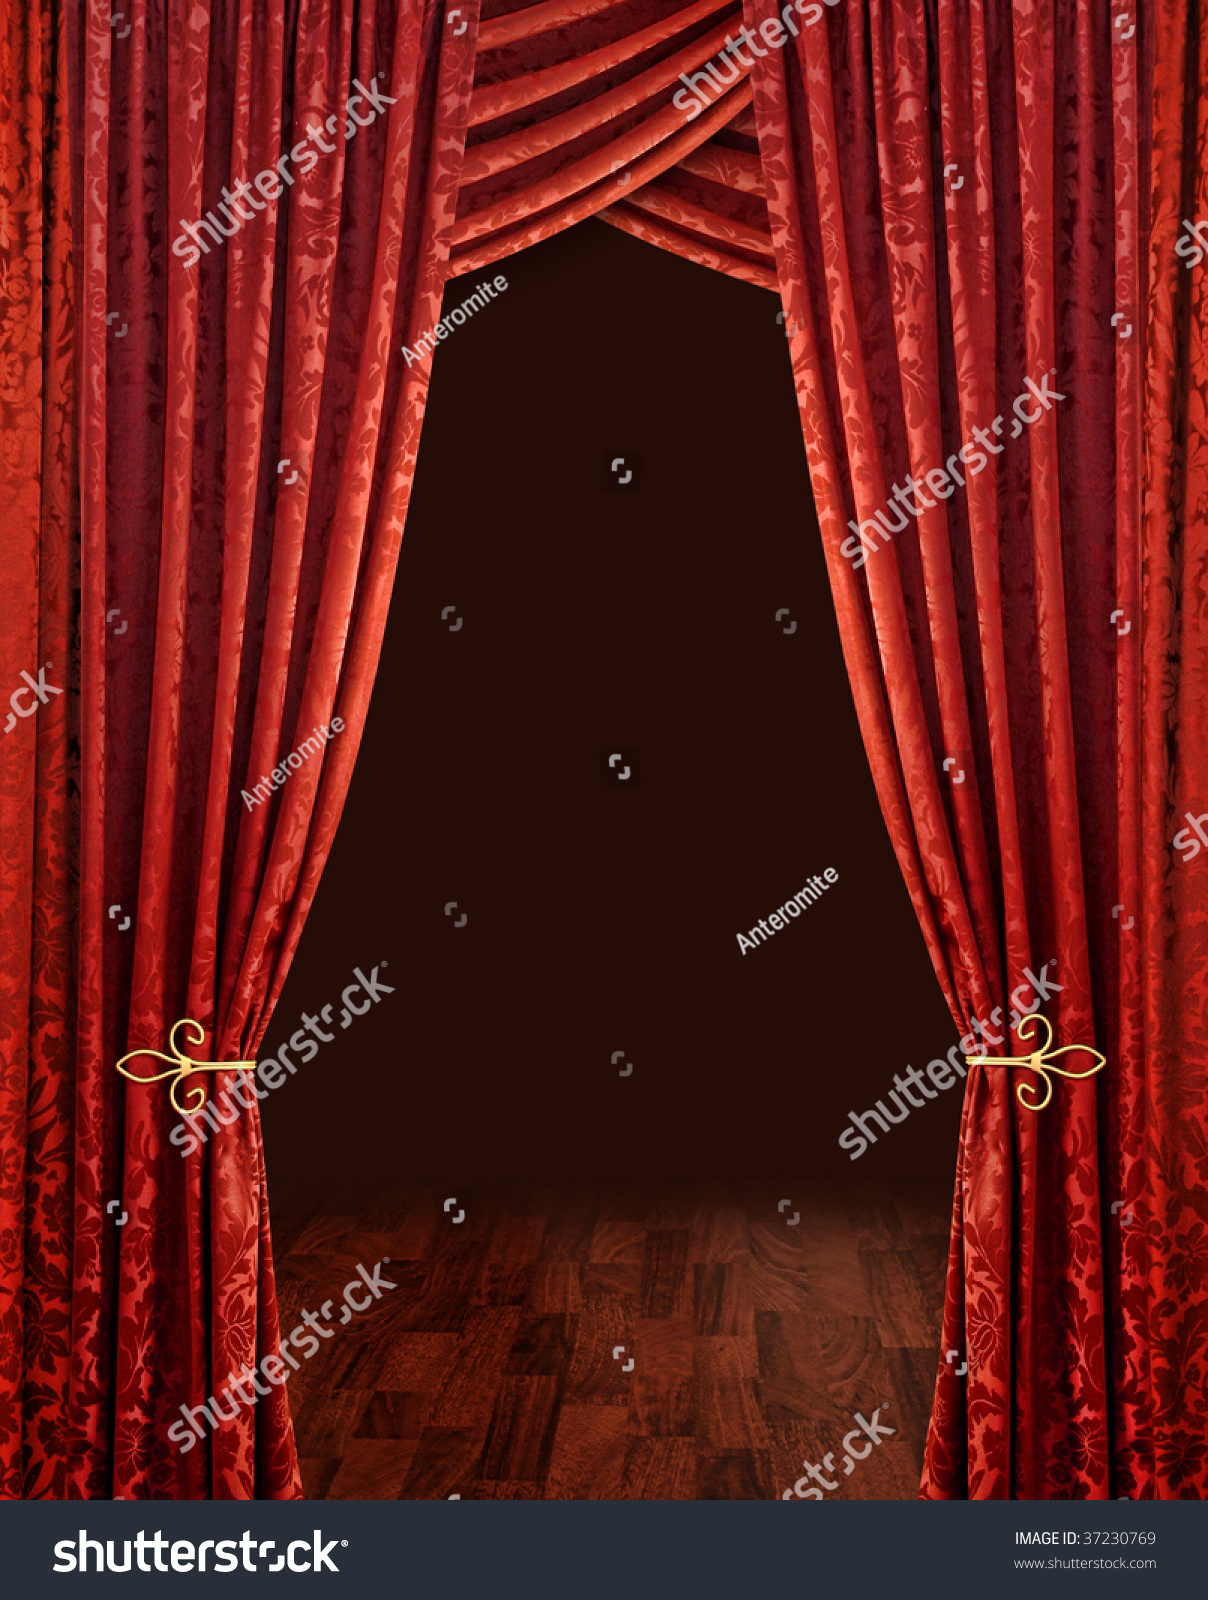 Red stage curtains - Save To A Lightbox